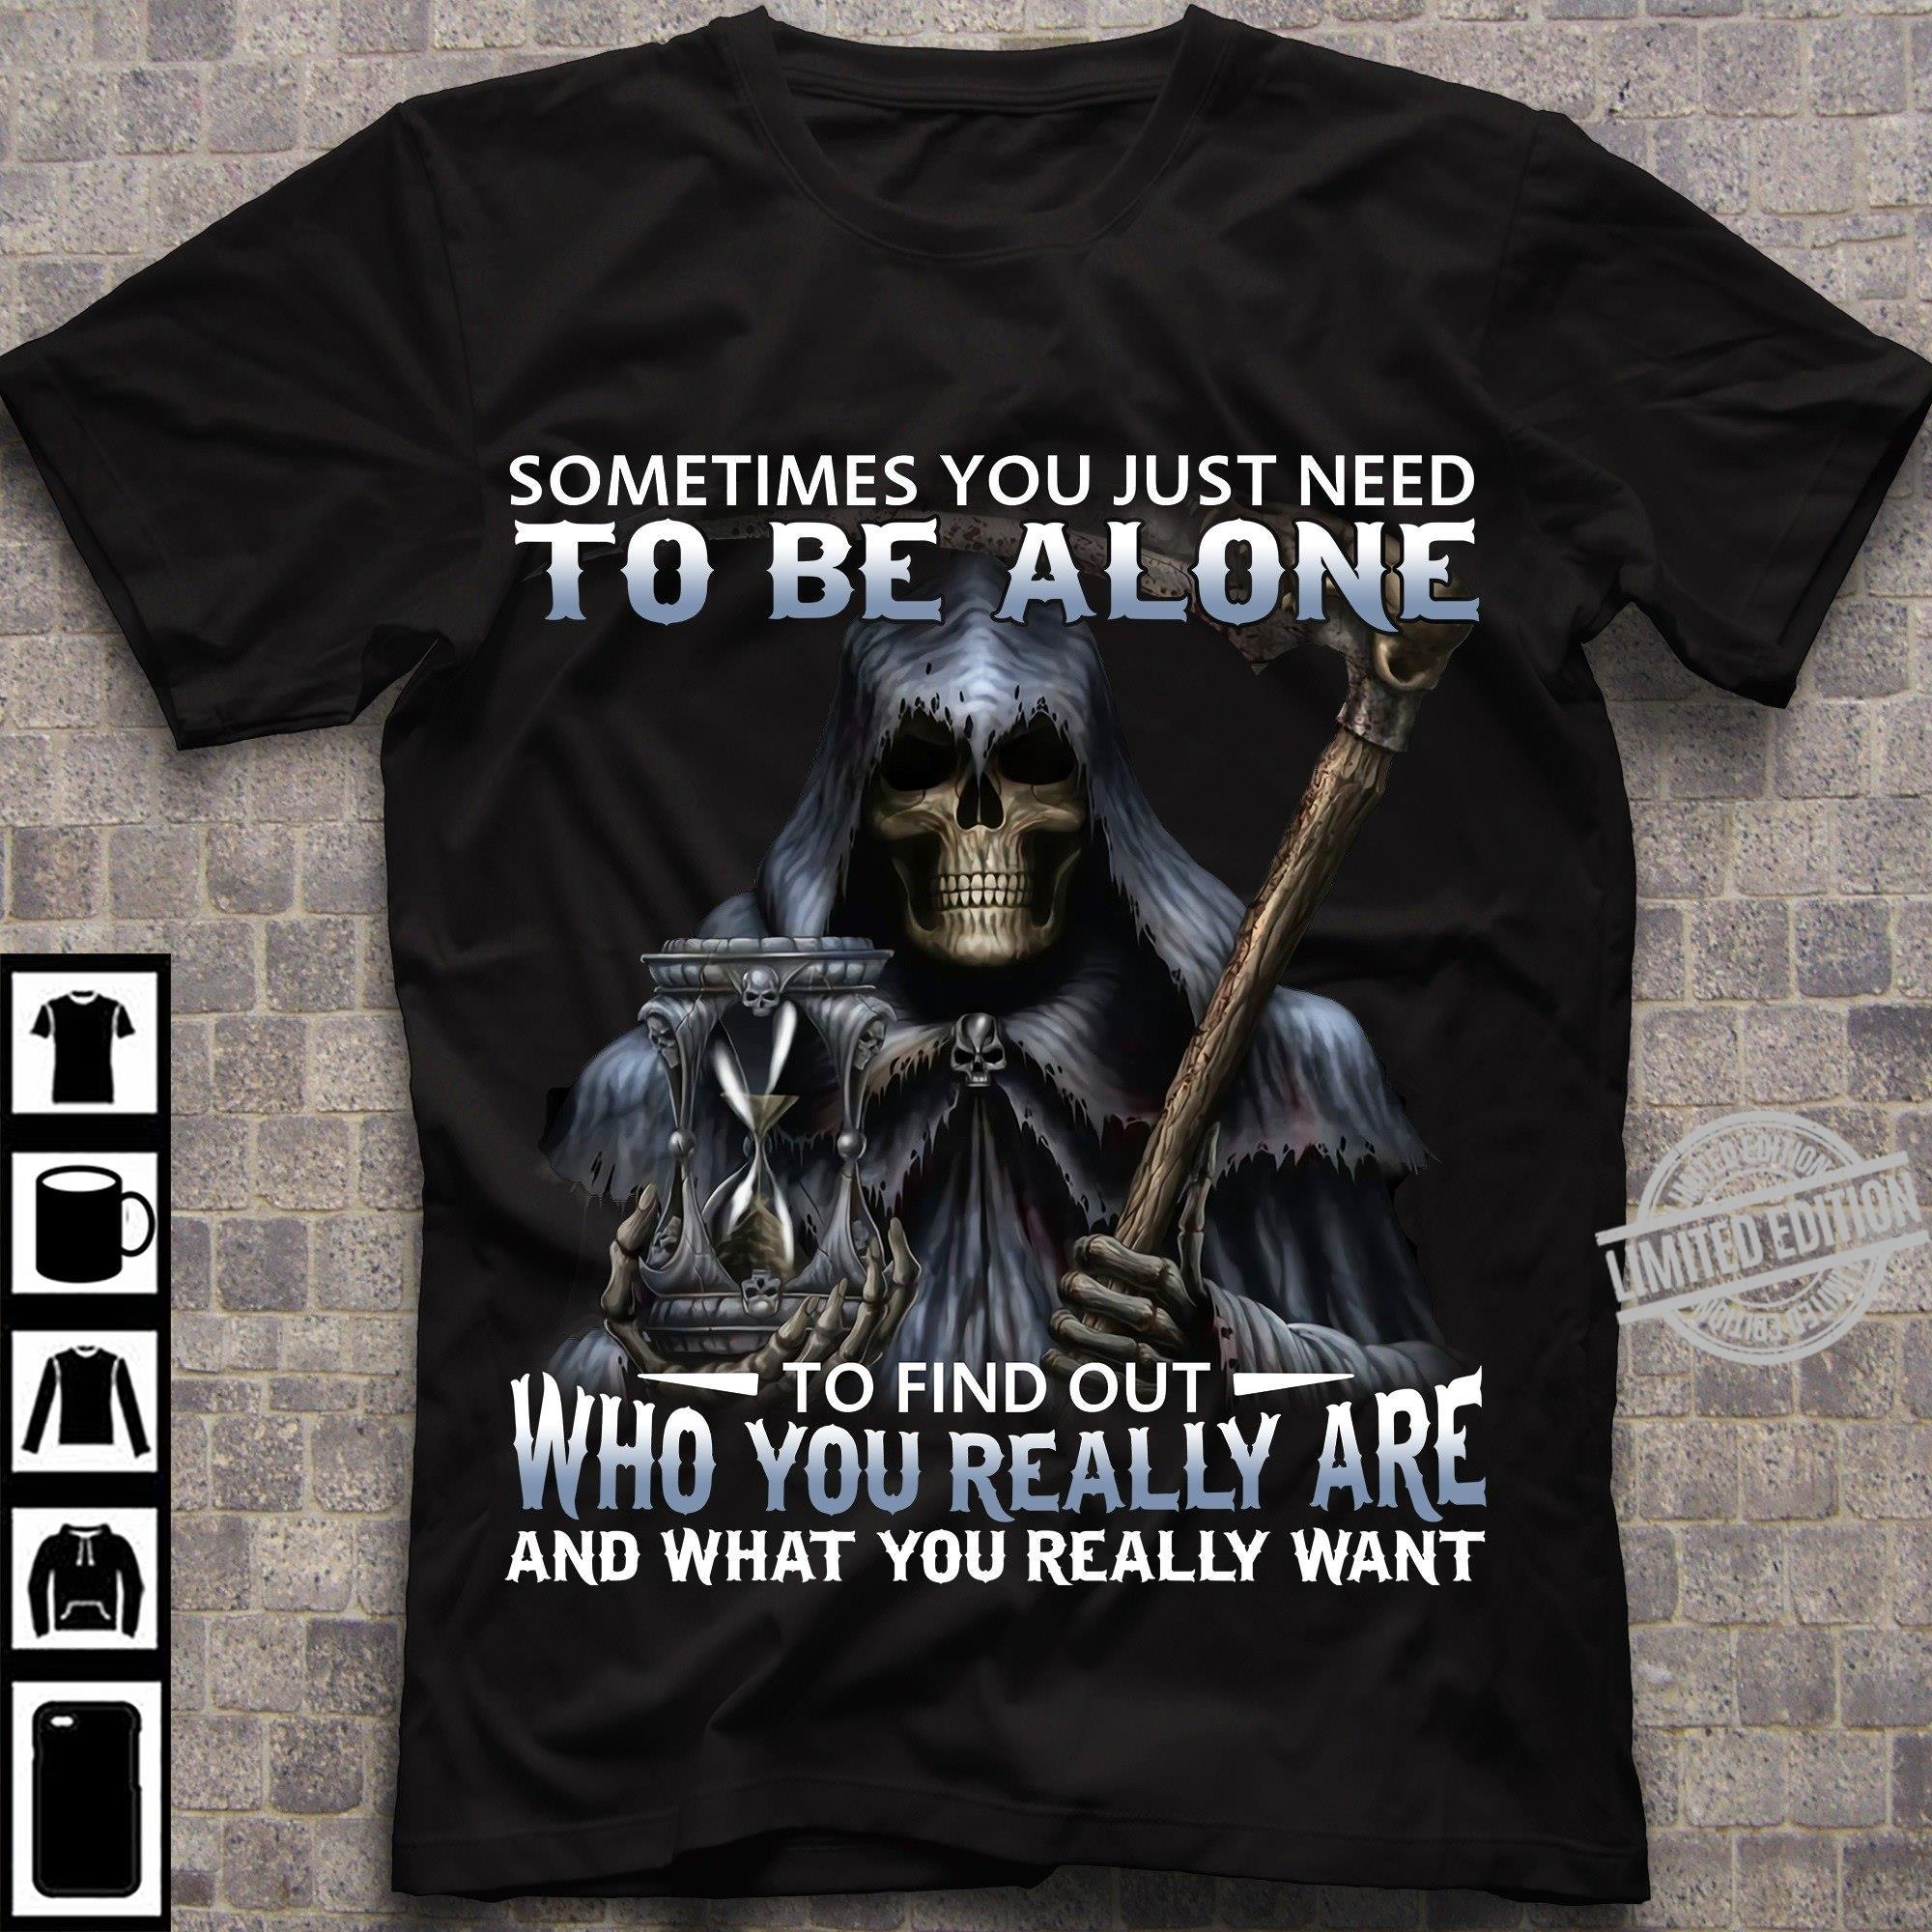 Sometimes You Just Need To Be Alone To Find Out Who You Really Are And What You Really Want Shirt